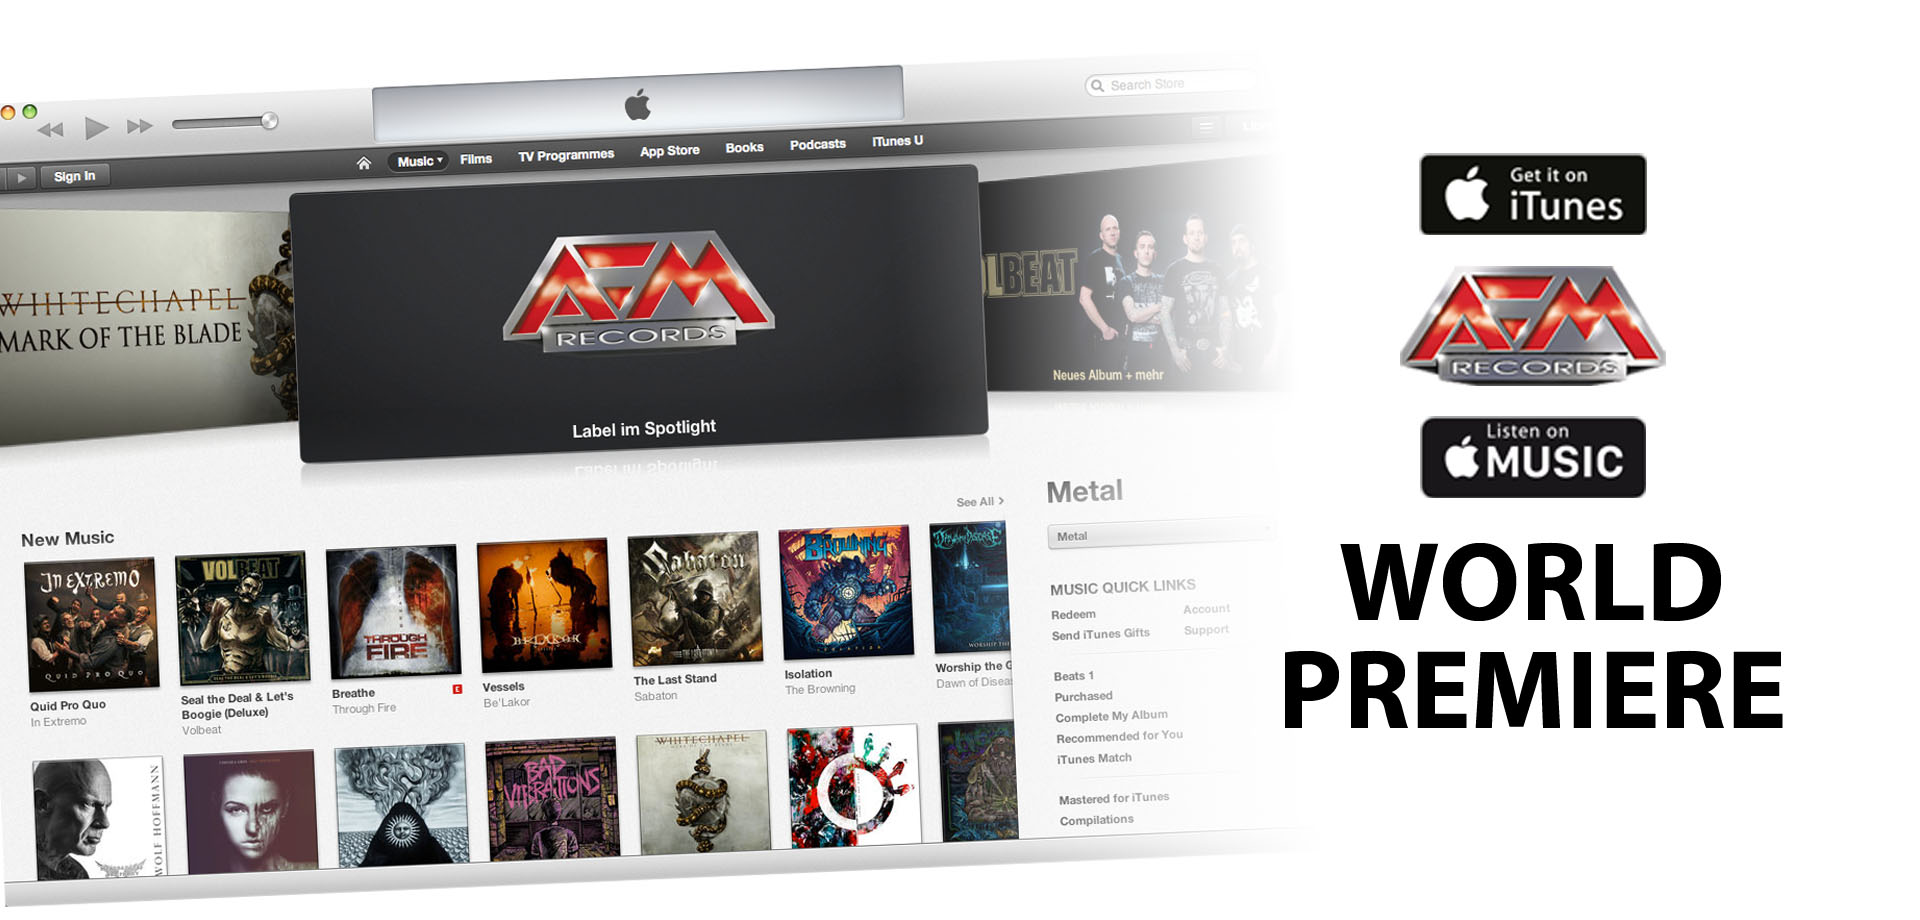 WORLD PREMIERE: AFM RECORDS & APPLE